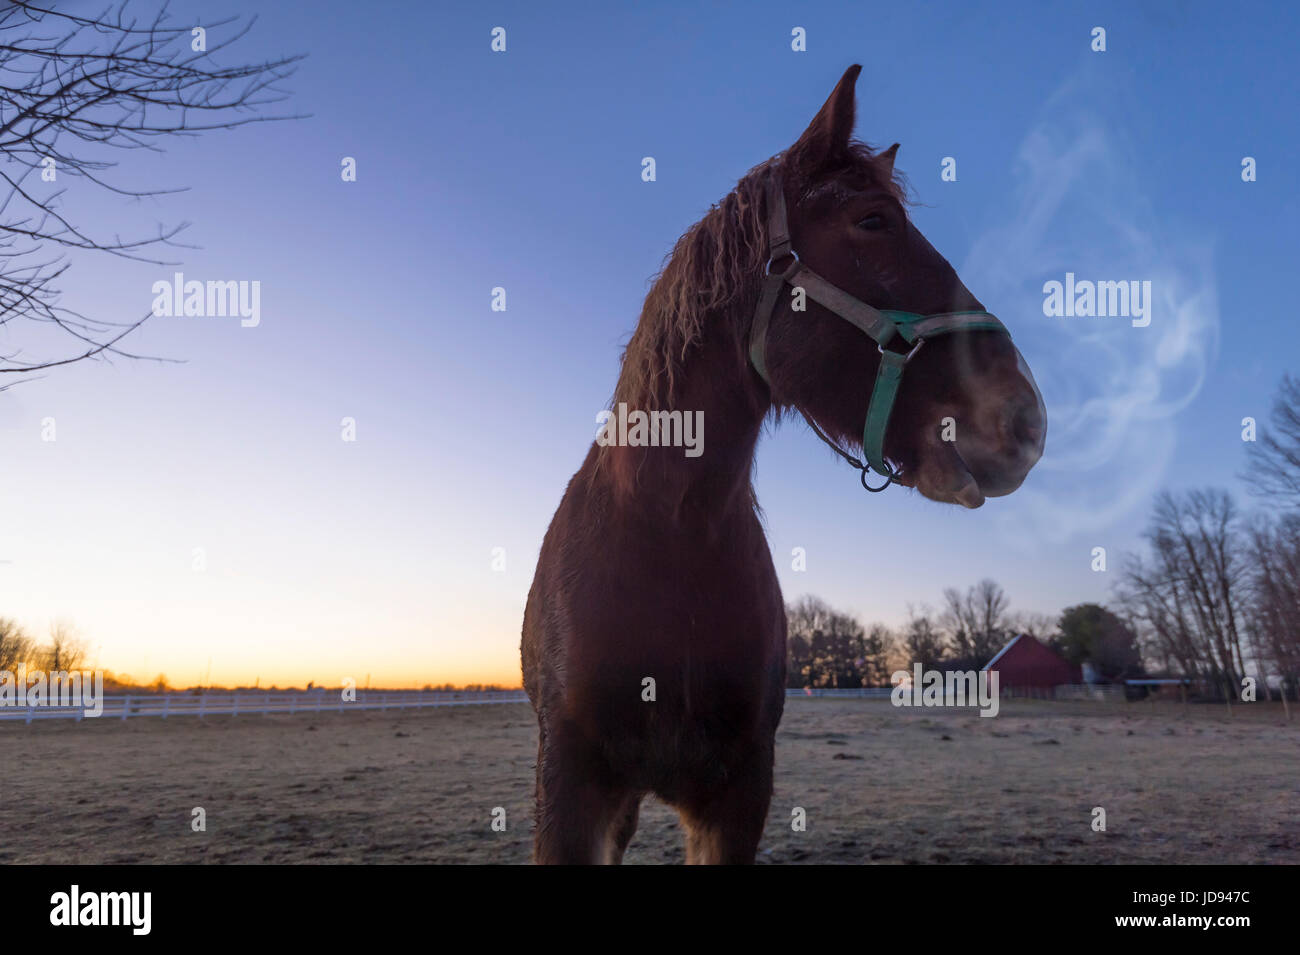 Horse Breath Cold Winter Morning - Stock Image